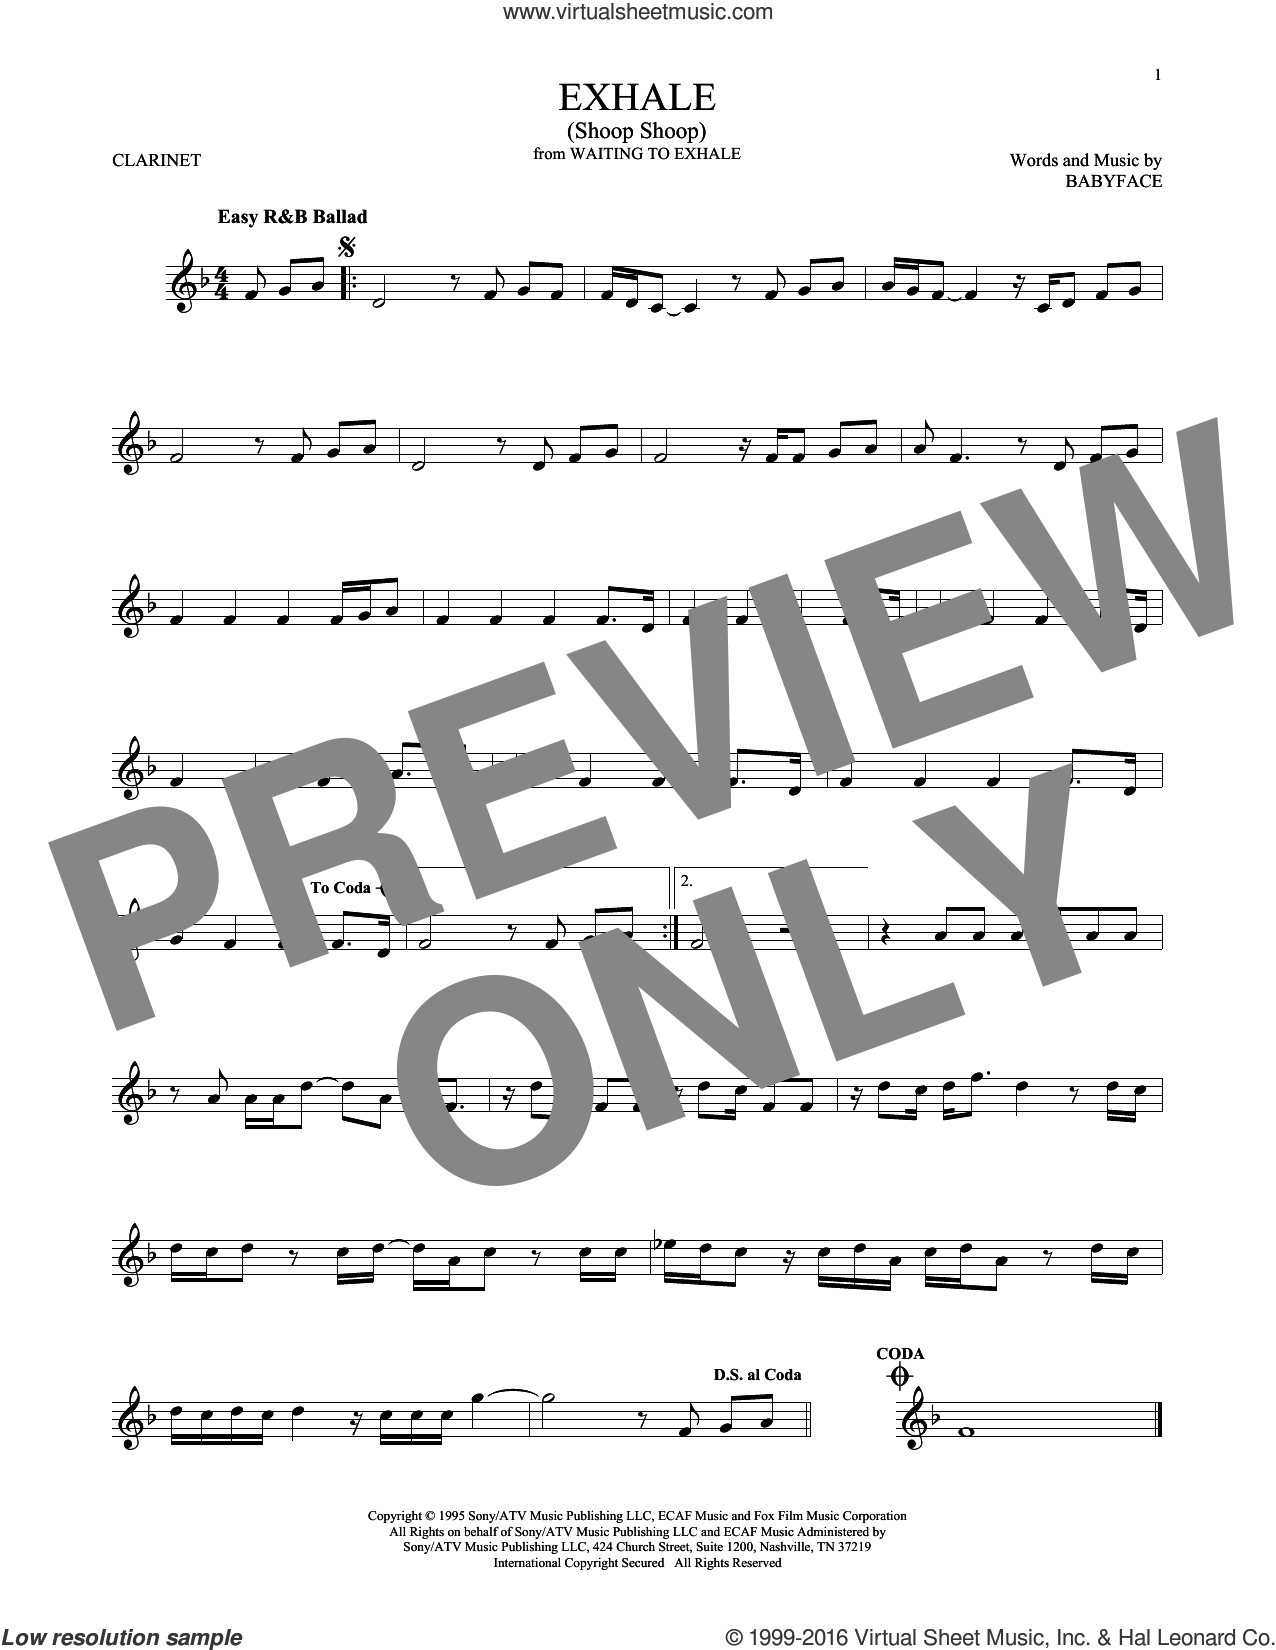 Exhale (Shoop Shoop) sheet music for clarinet solo by Whitney Houston and Babyface, intermediate skill level